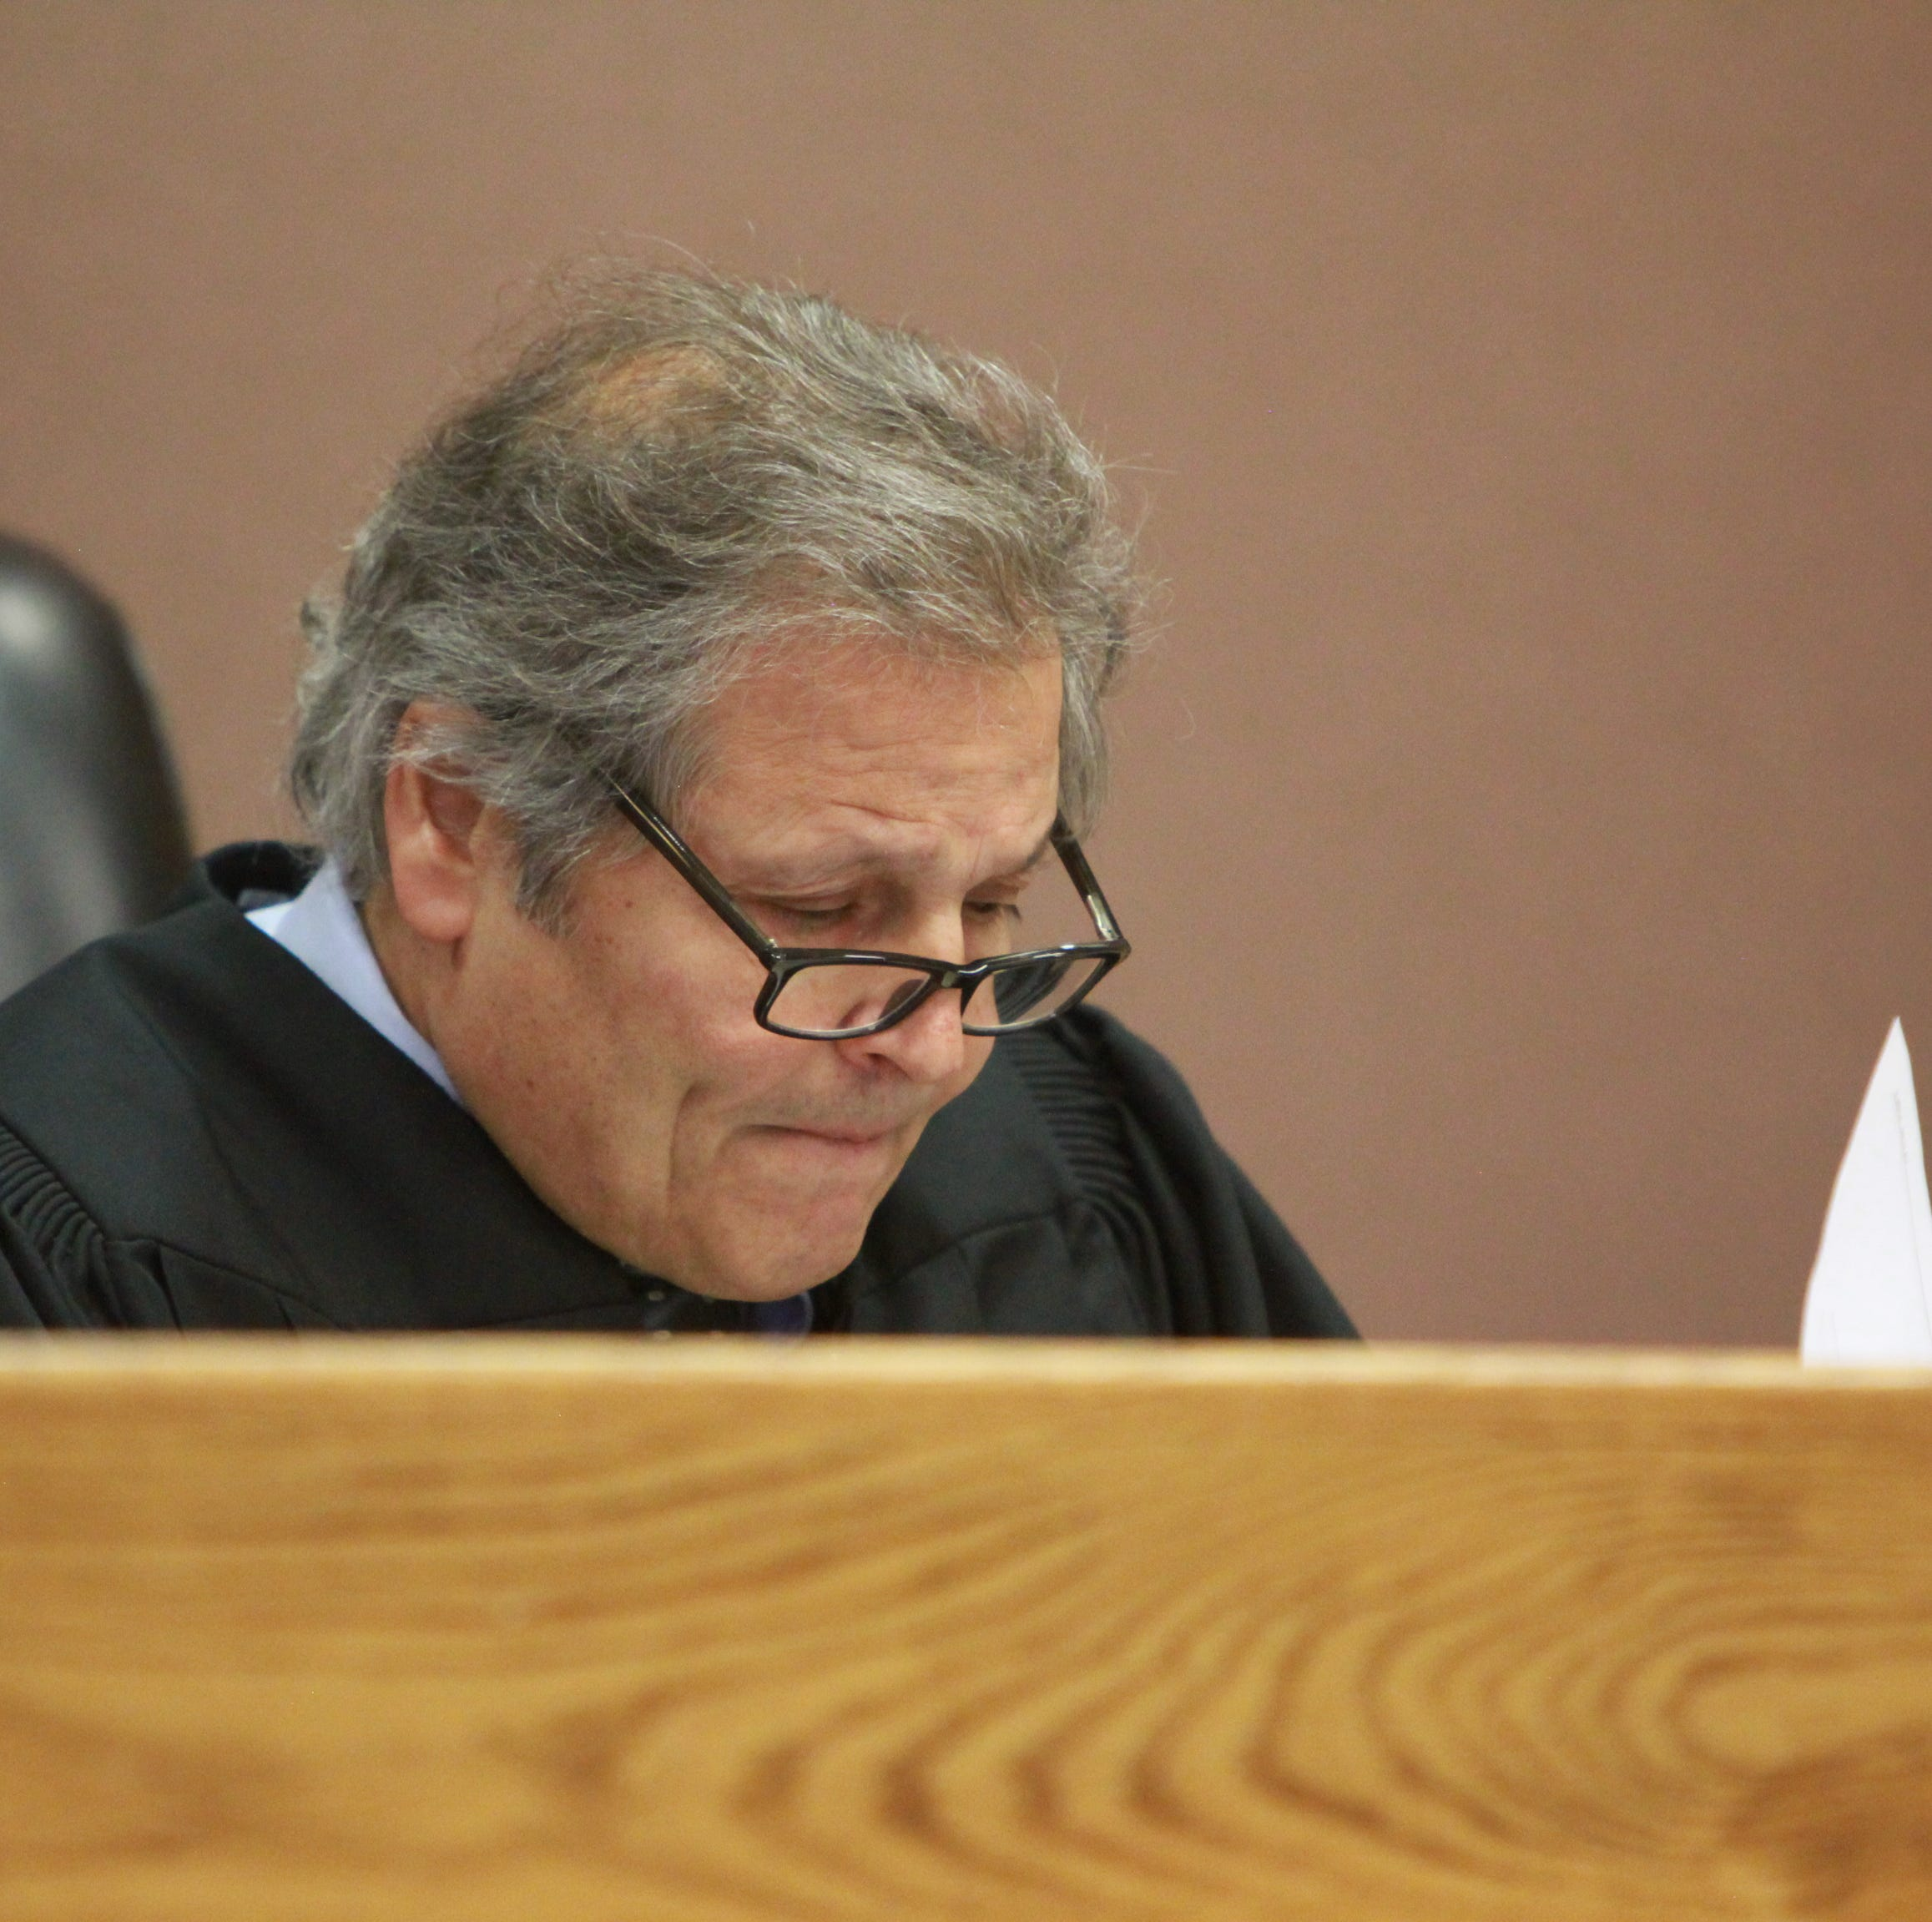 Livingston County Judge Michael Hatty selected to head new business court